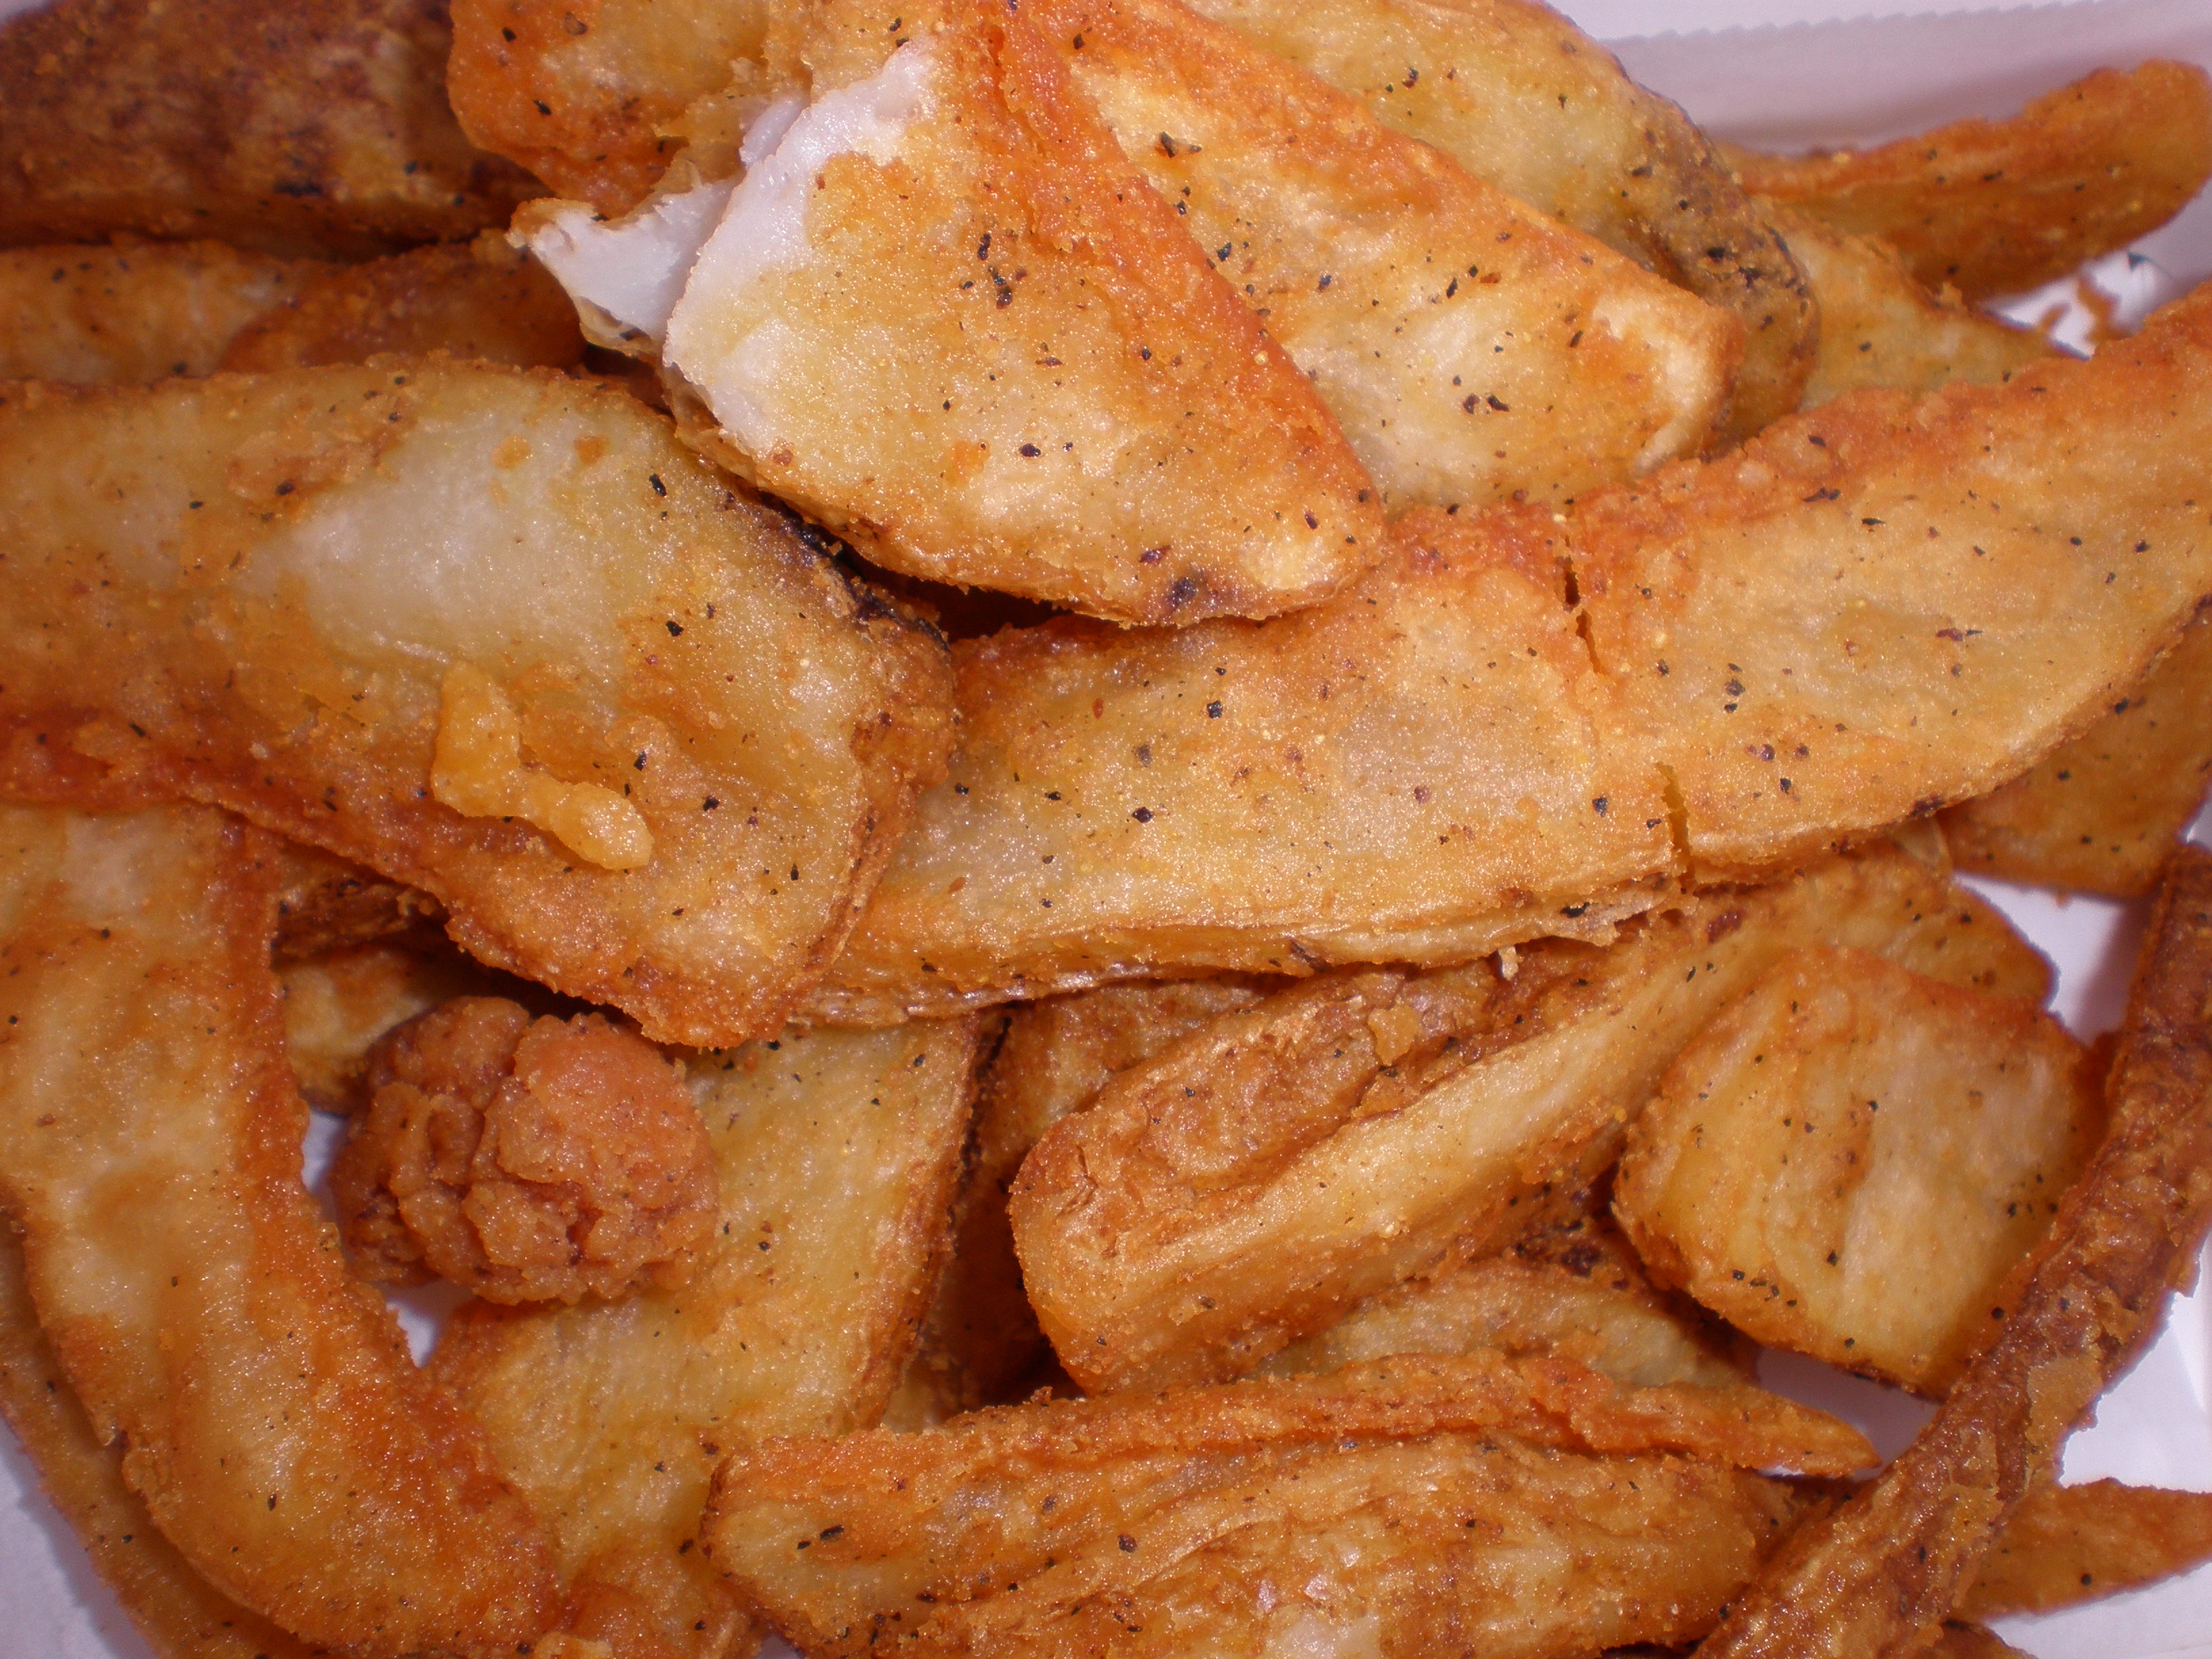 File:KFC potato wedges.JPGFried Potato Wedges Kfc